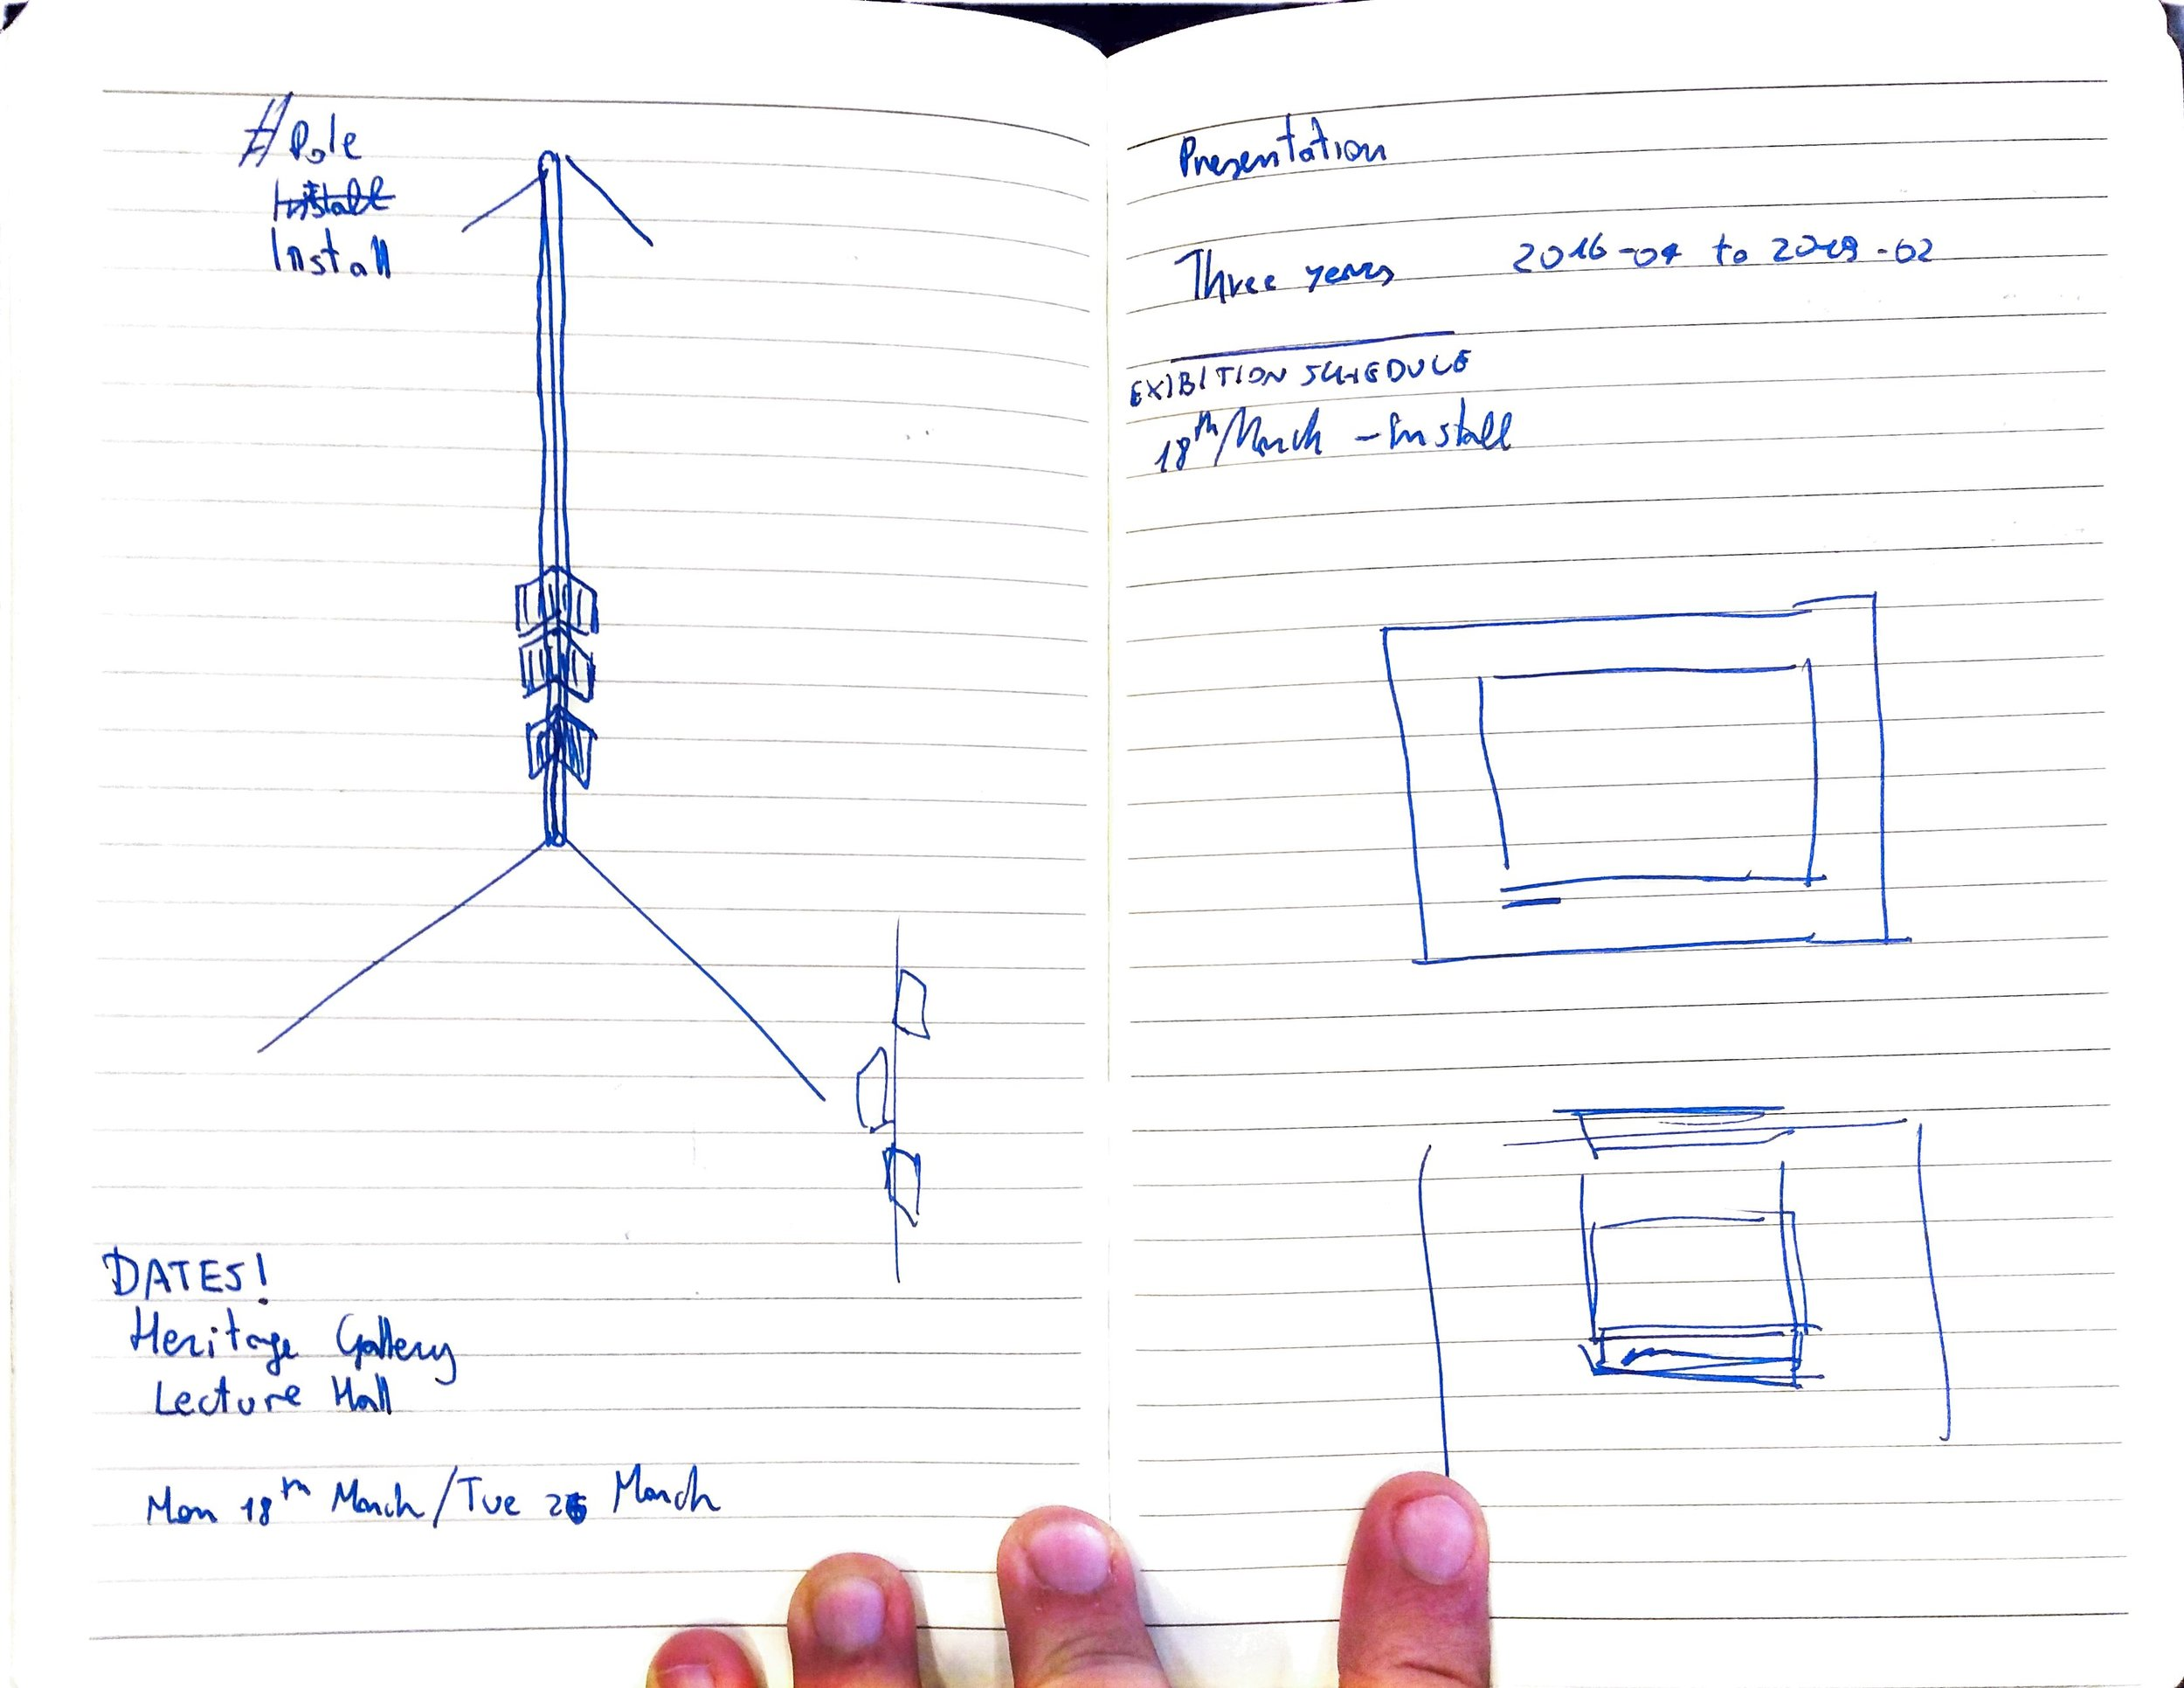 black and pink notebooks_Page_48_Image_0001.jpg